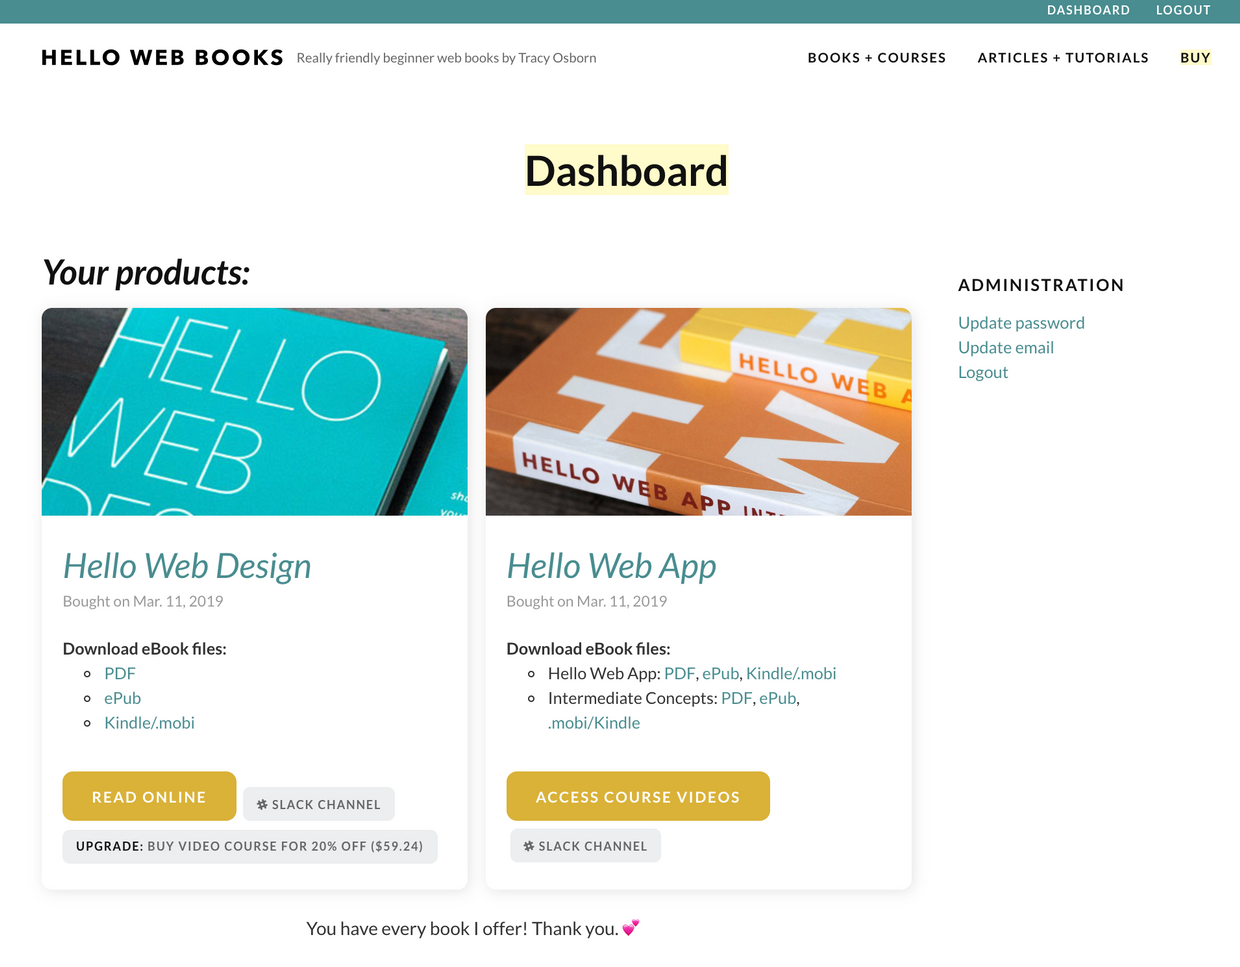 The new Hello Web Books website has launched! - Hello Web Books